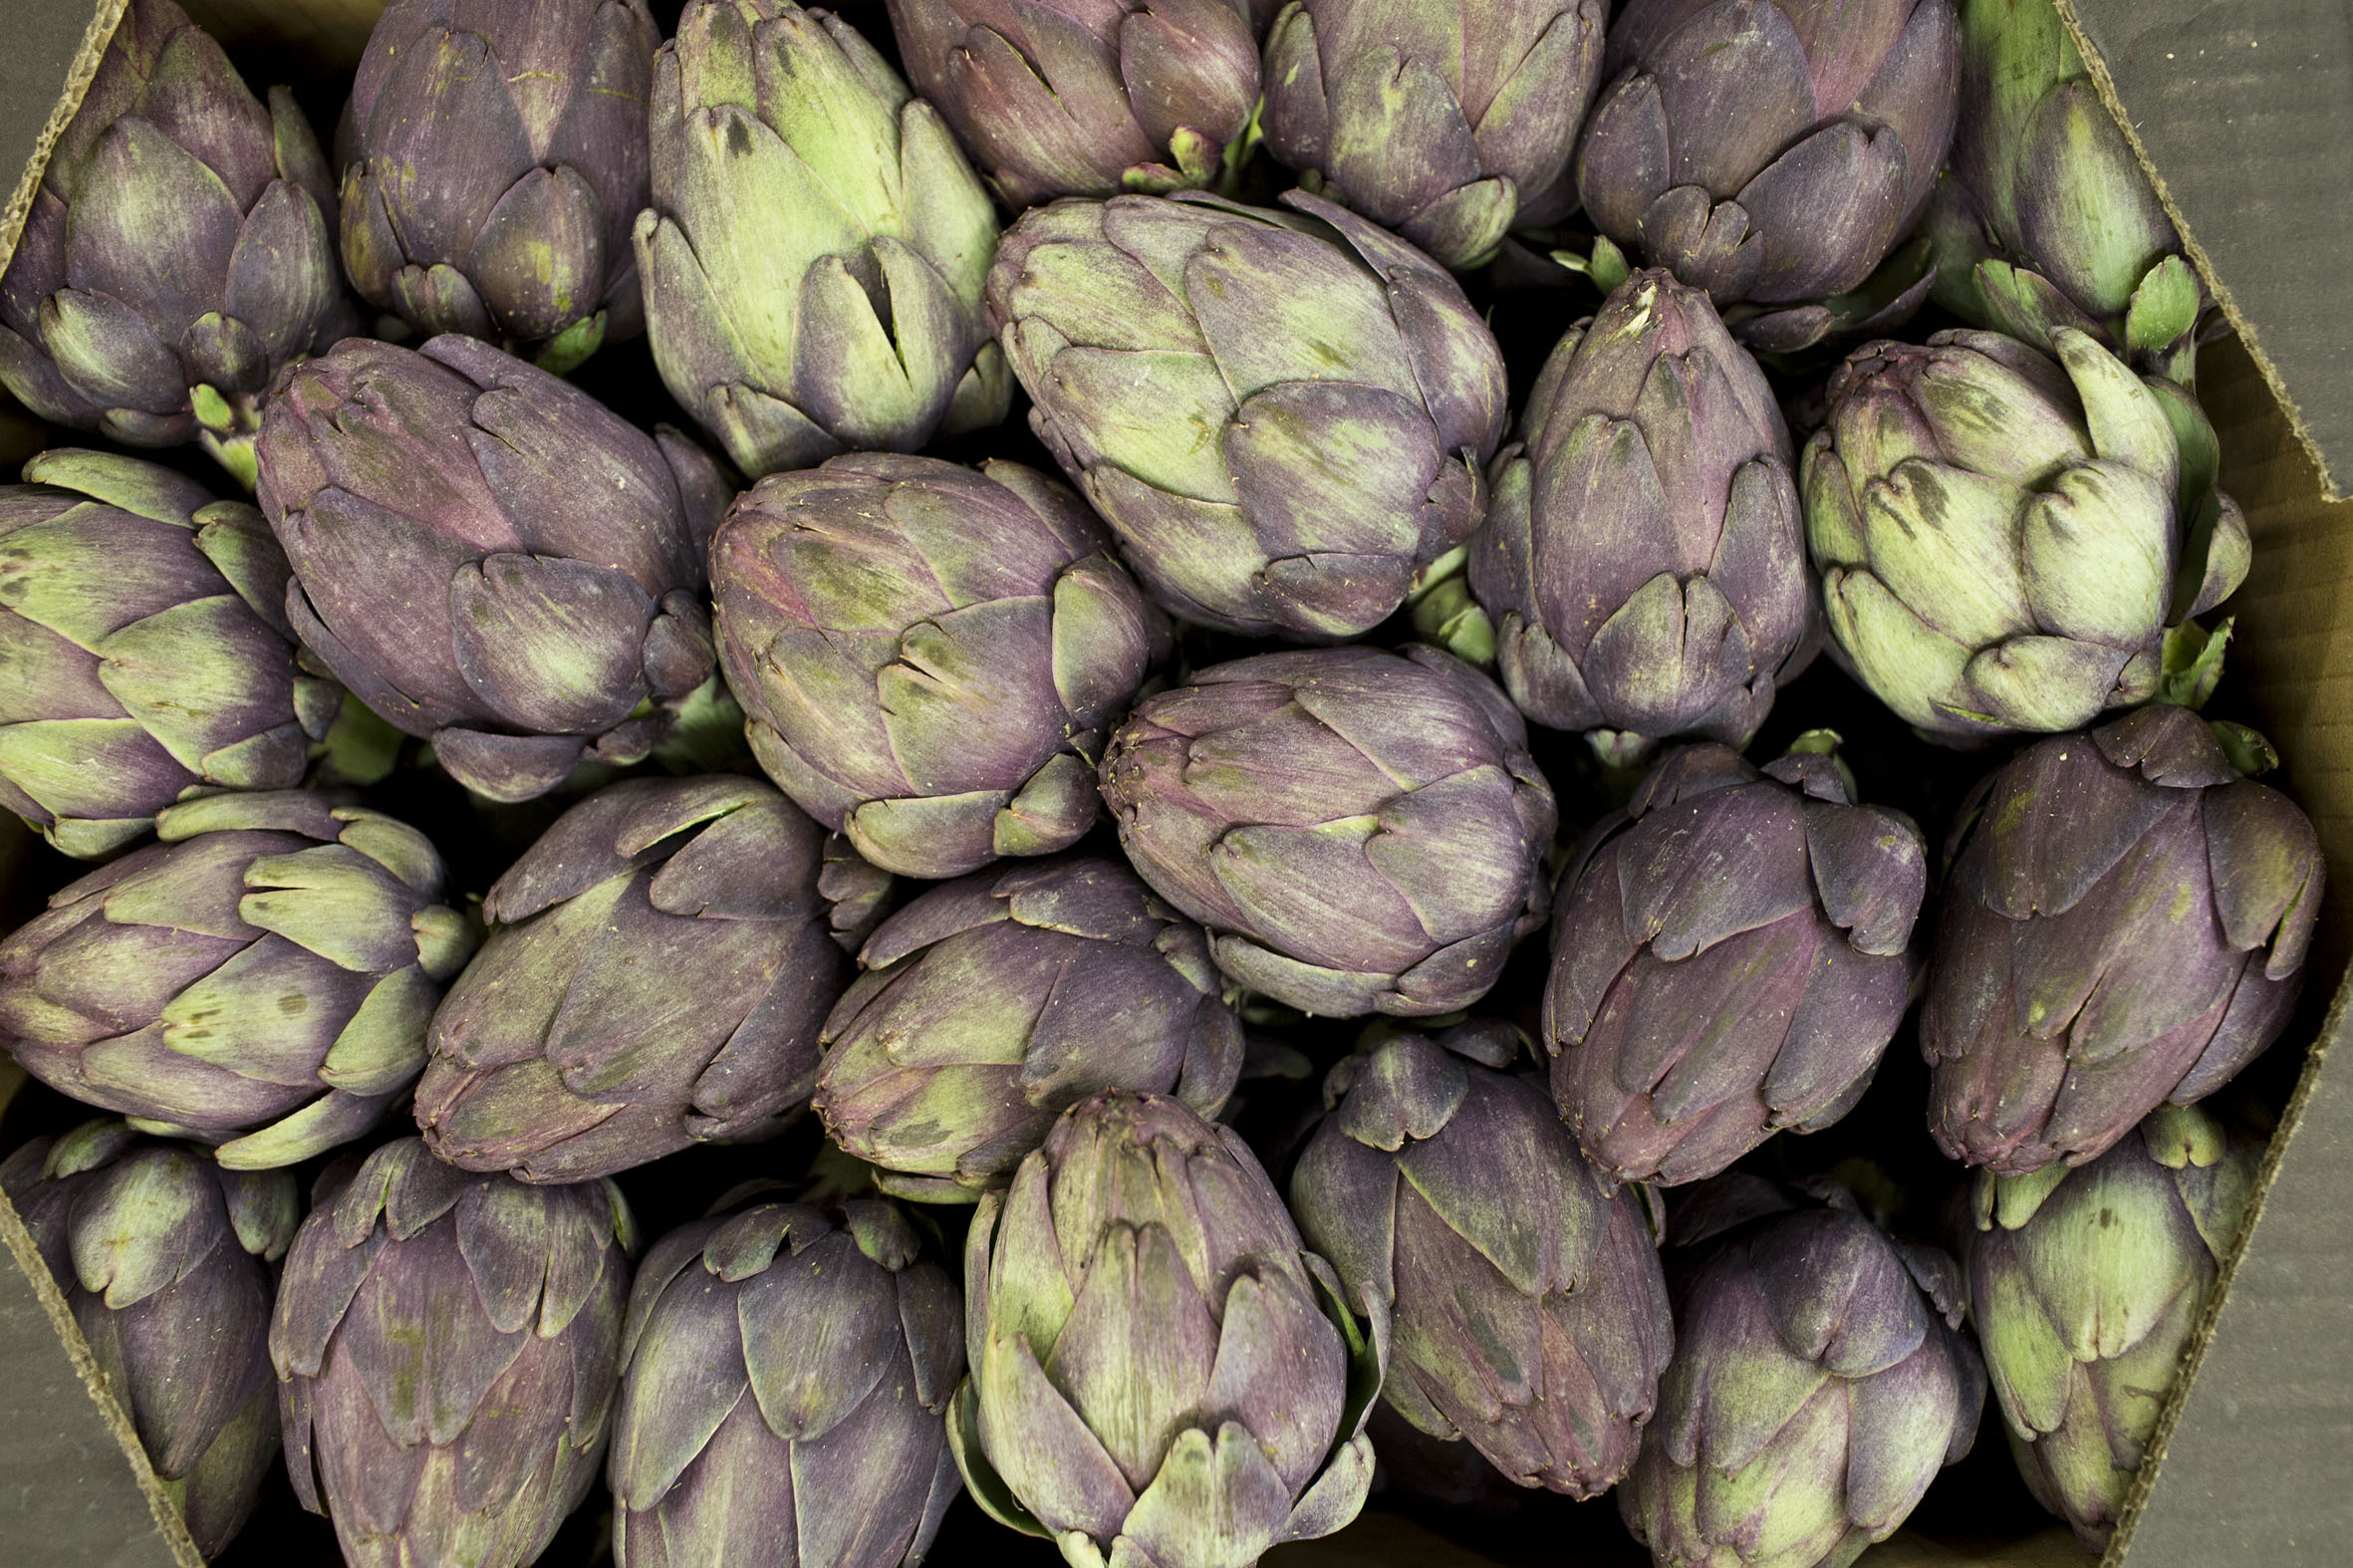 fruit-and-vegetable-market-report-march-2014-violet-artichokes.jpg?mtime=20170922112653#asset:11335